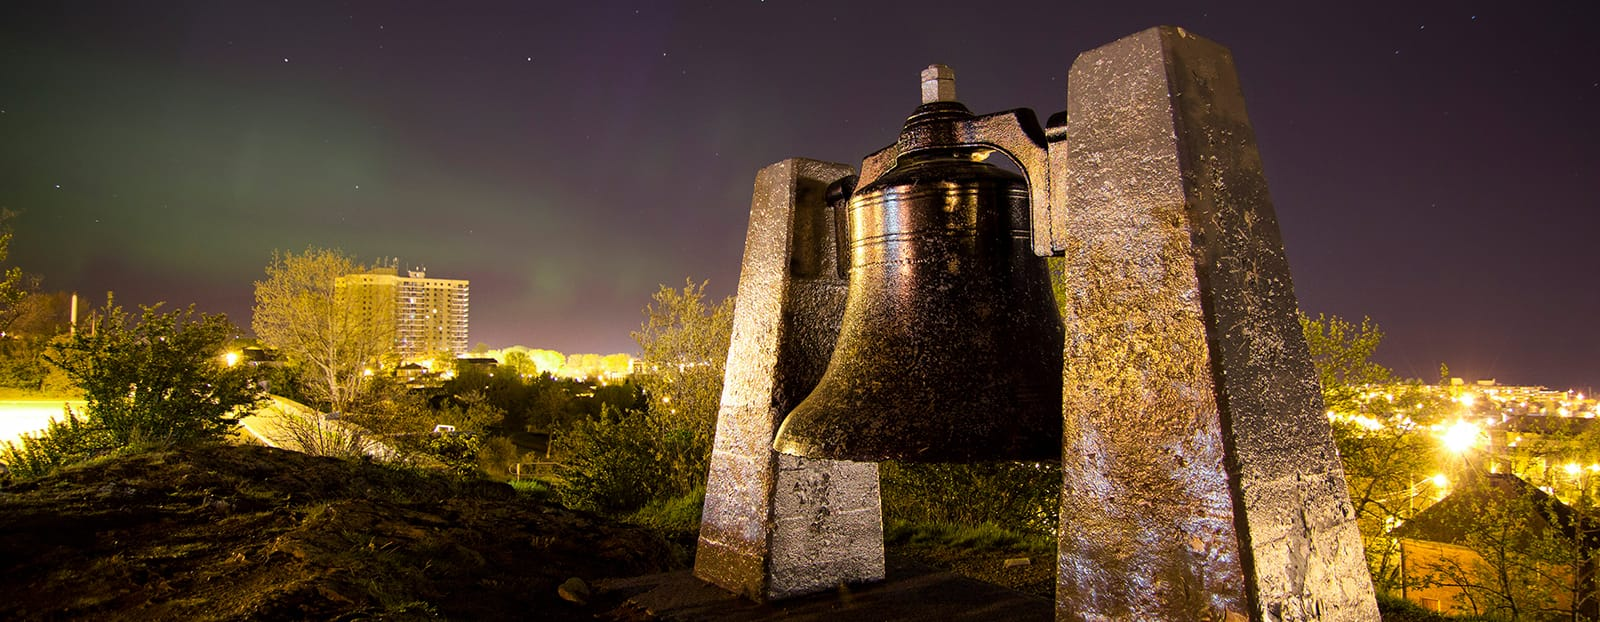 large bell on top of hill